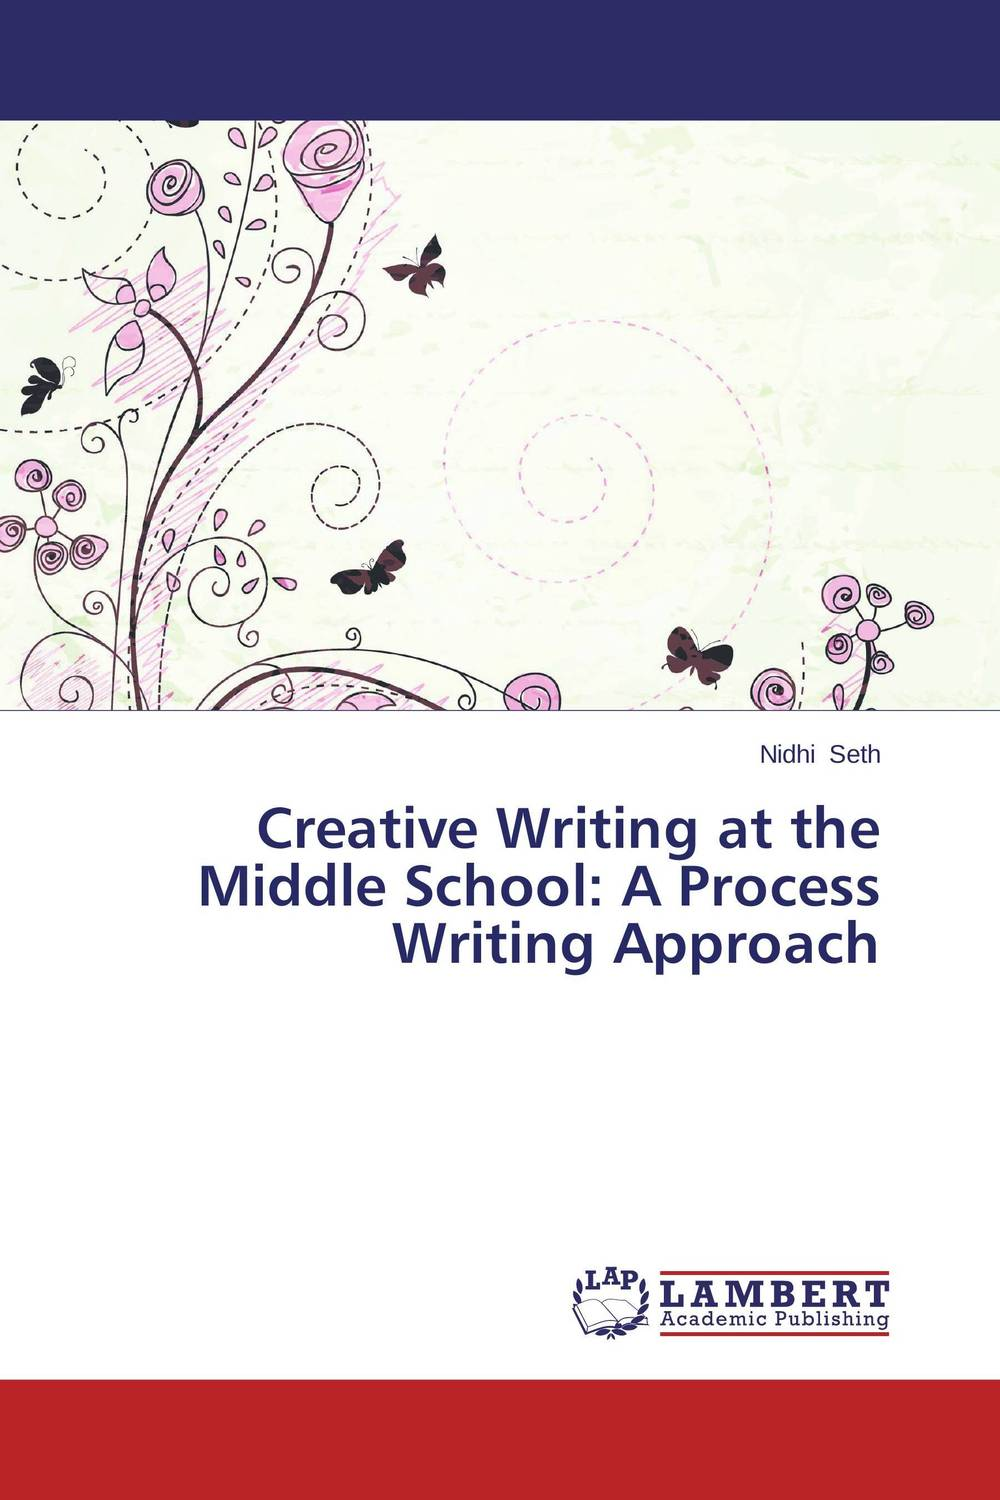 Creative Writing at the Middle School: A Process Writing Approach